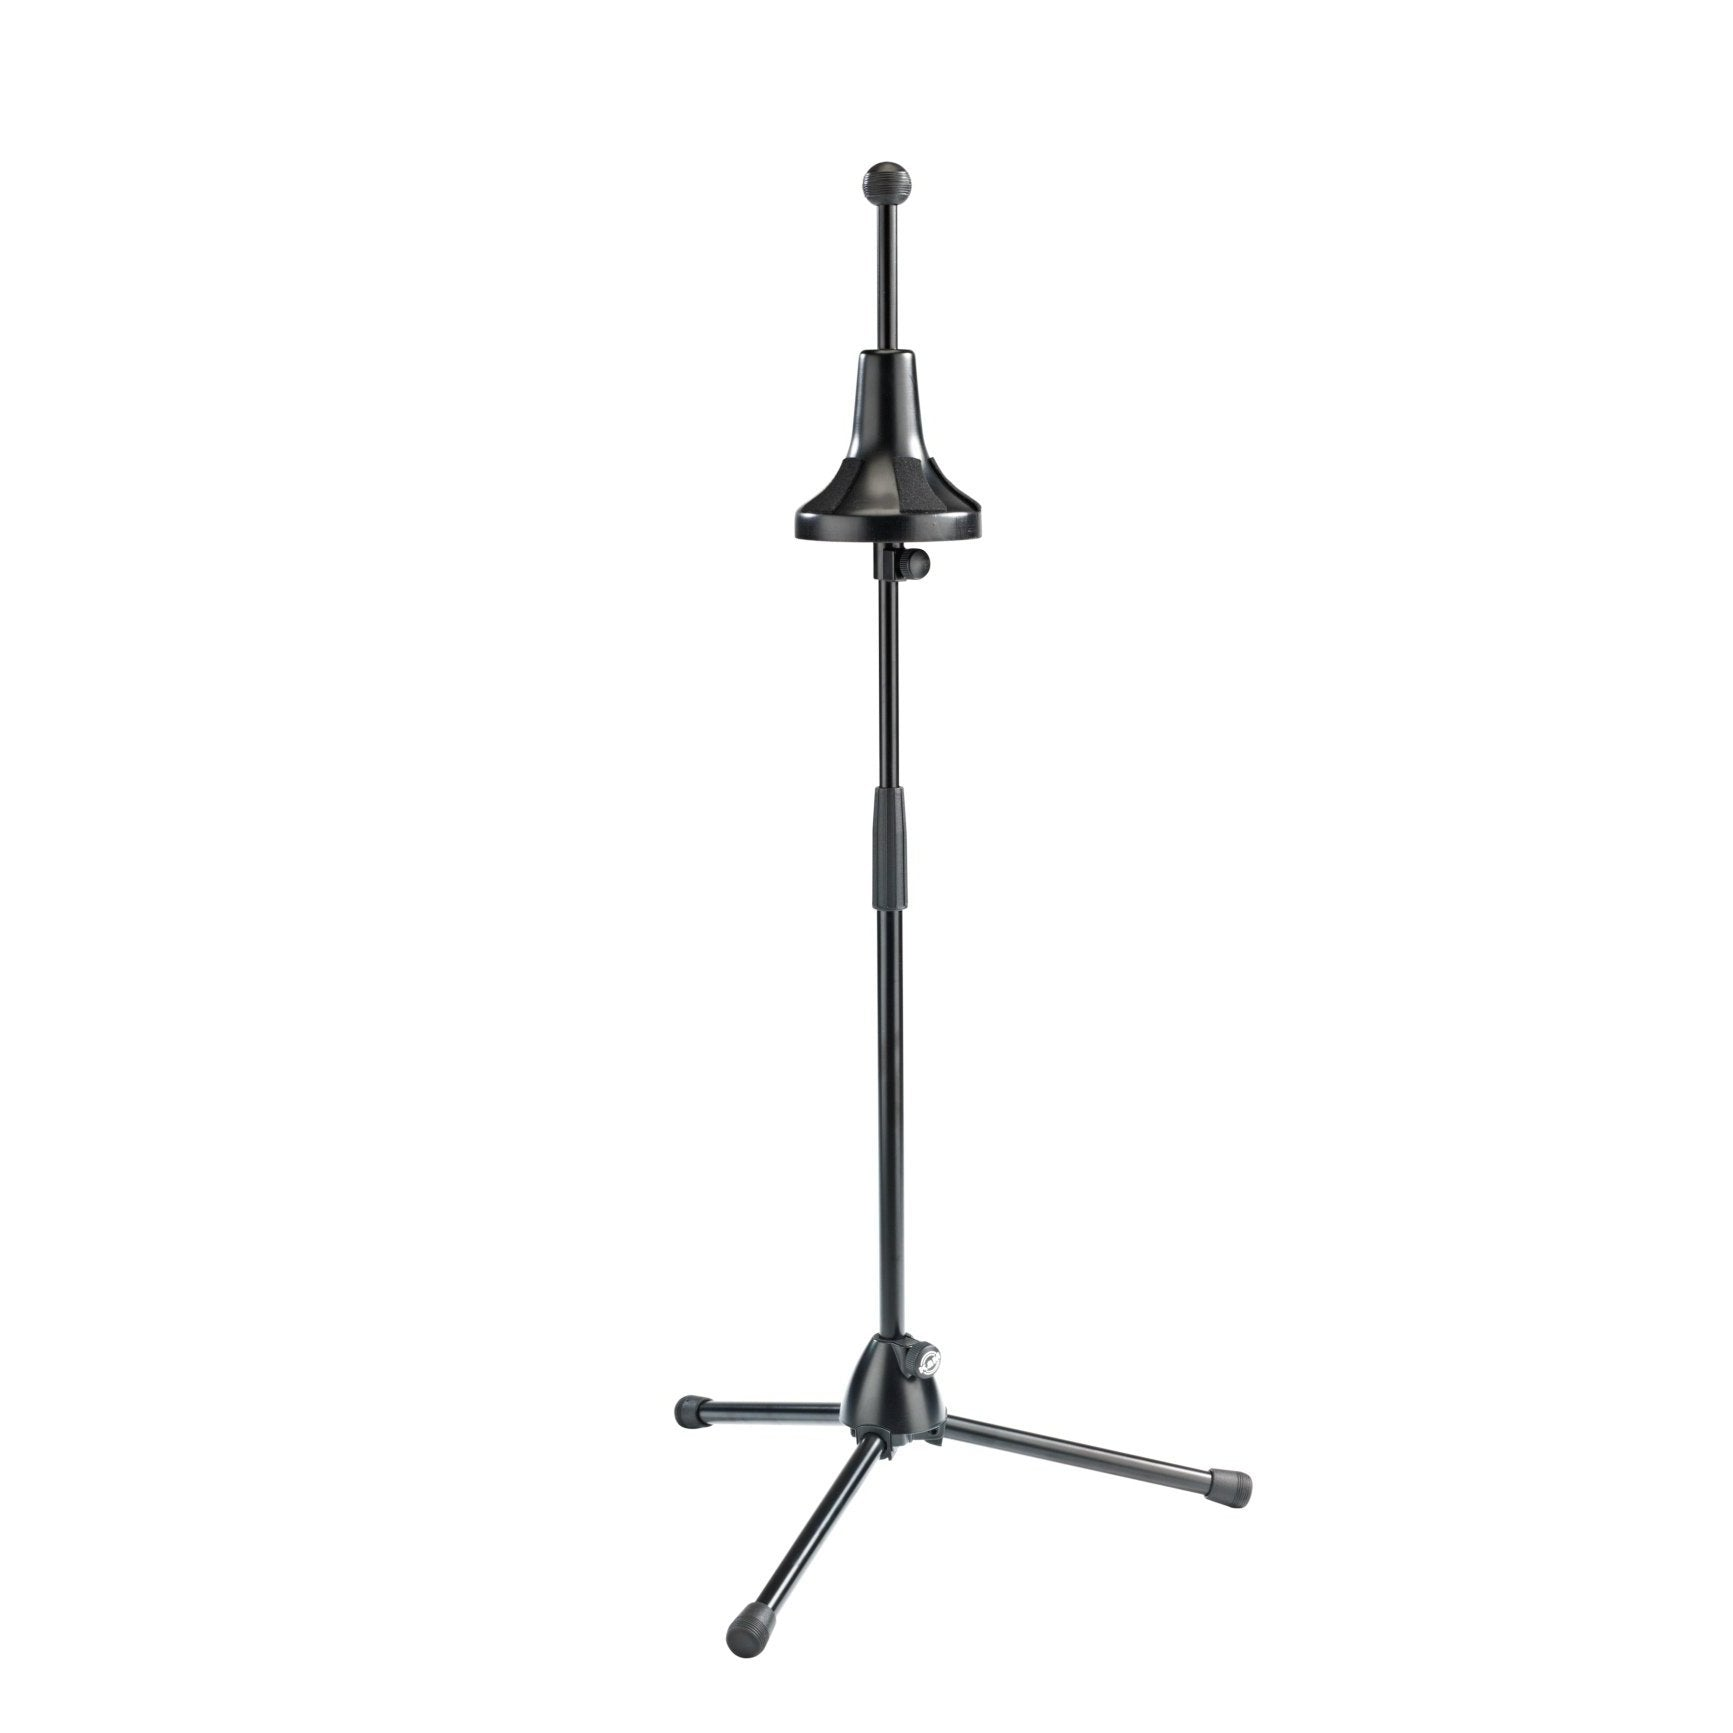 König & Meyer - 149/1 Bass Trombone Stand-Instrument Stand-König & Meyer-Music Elements